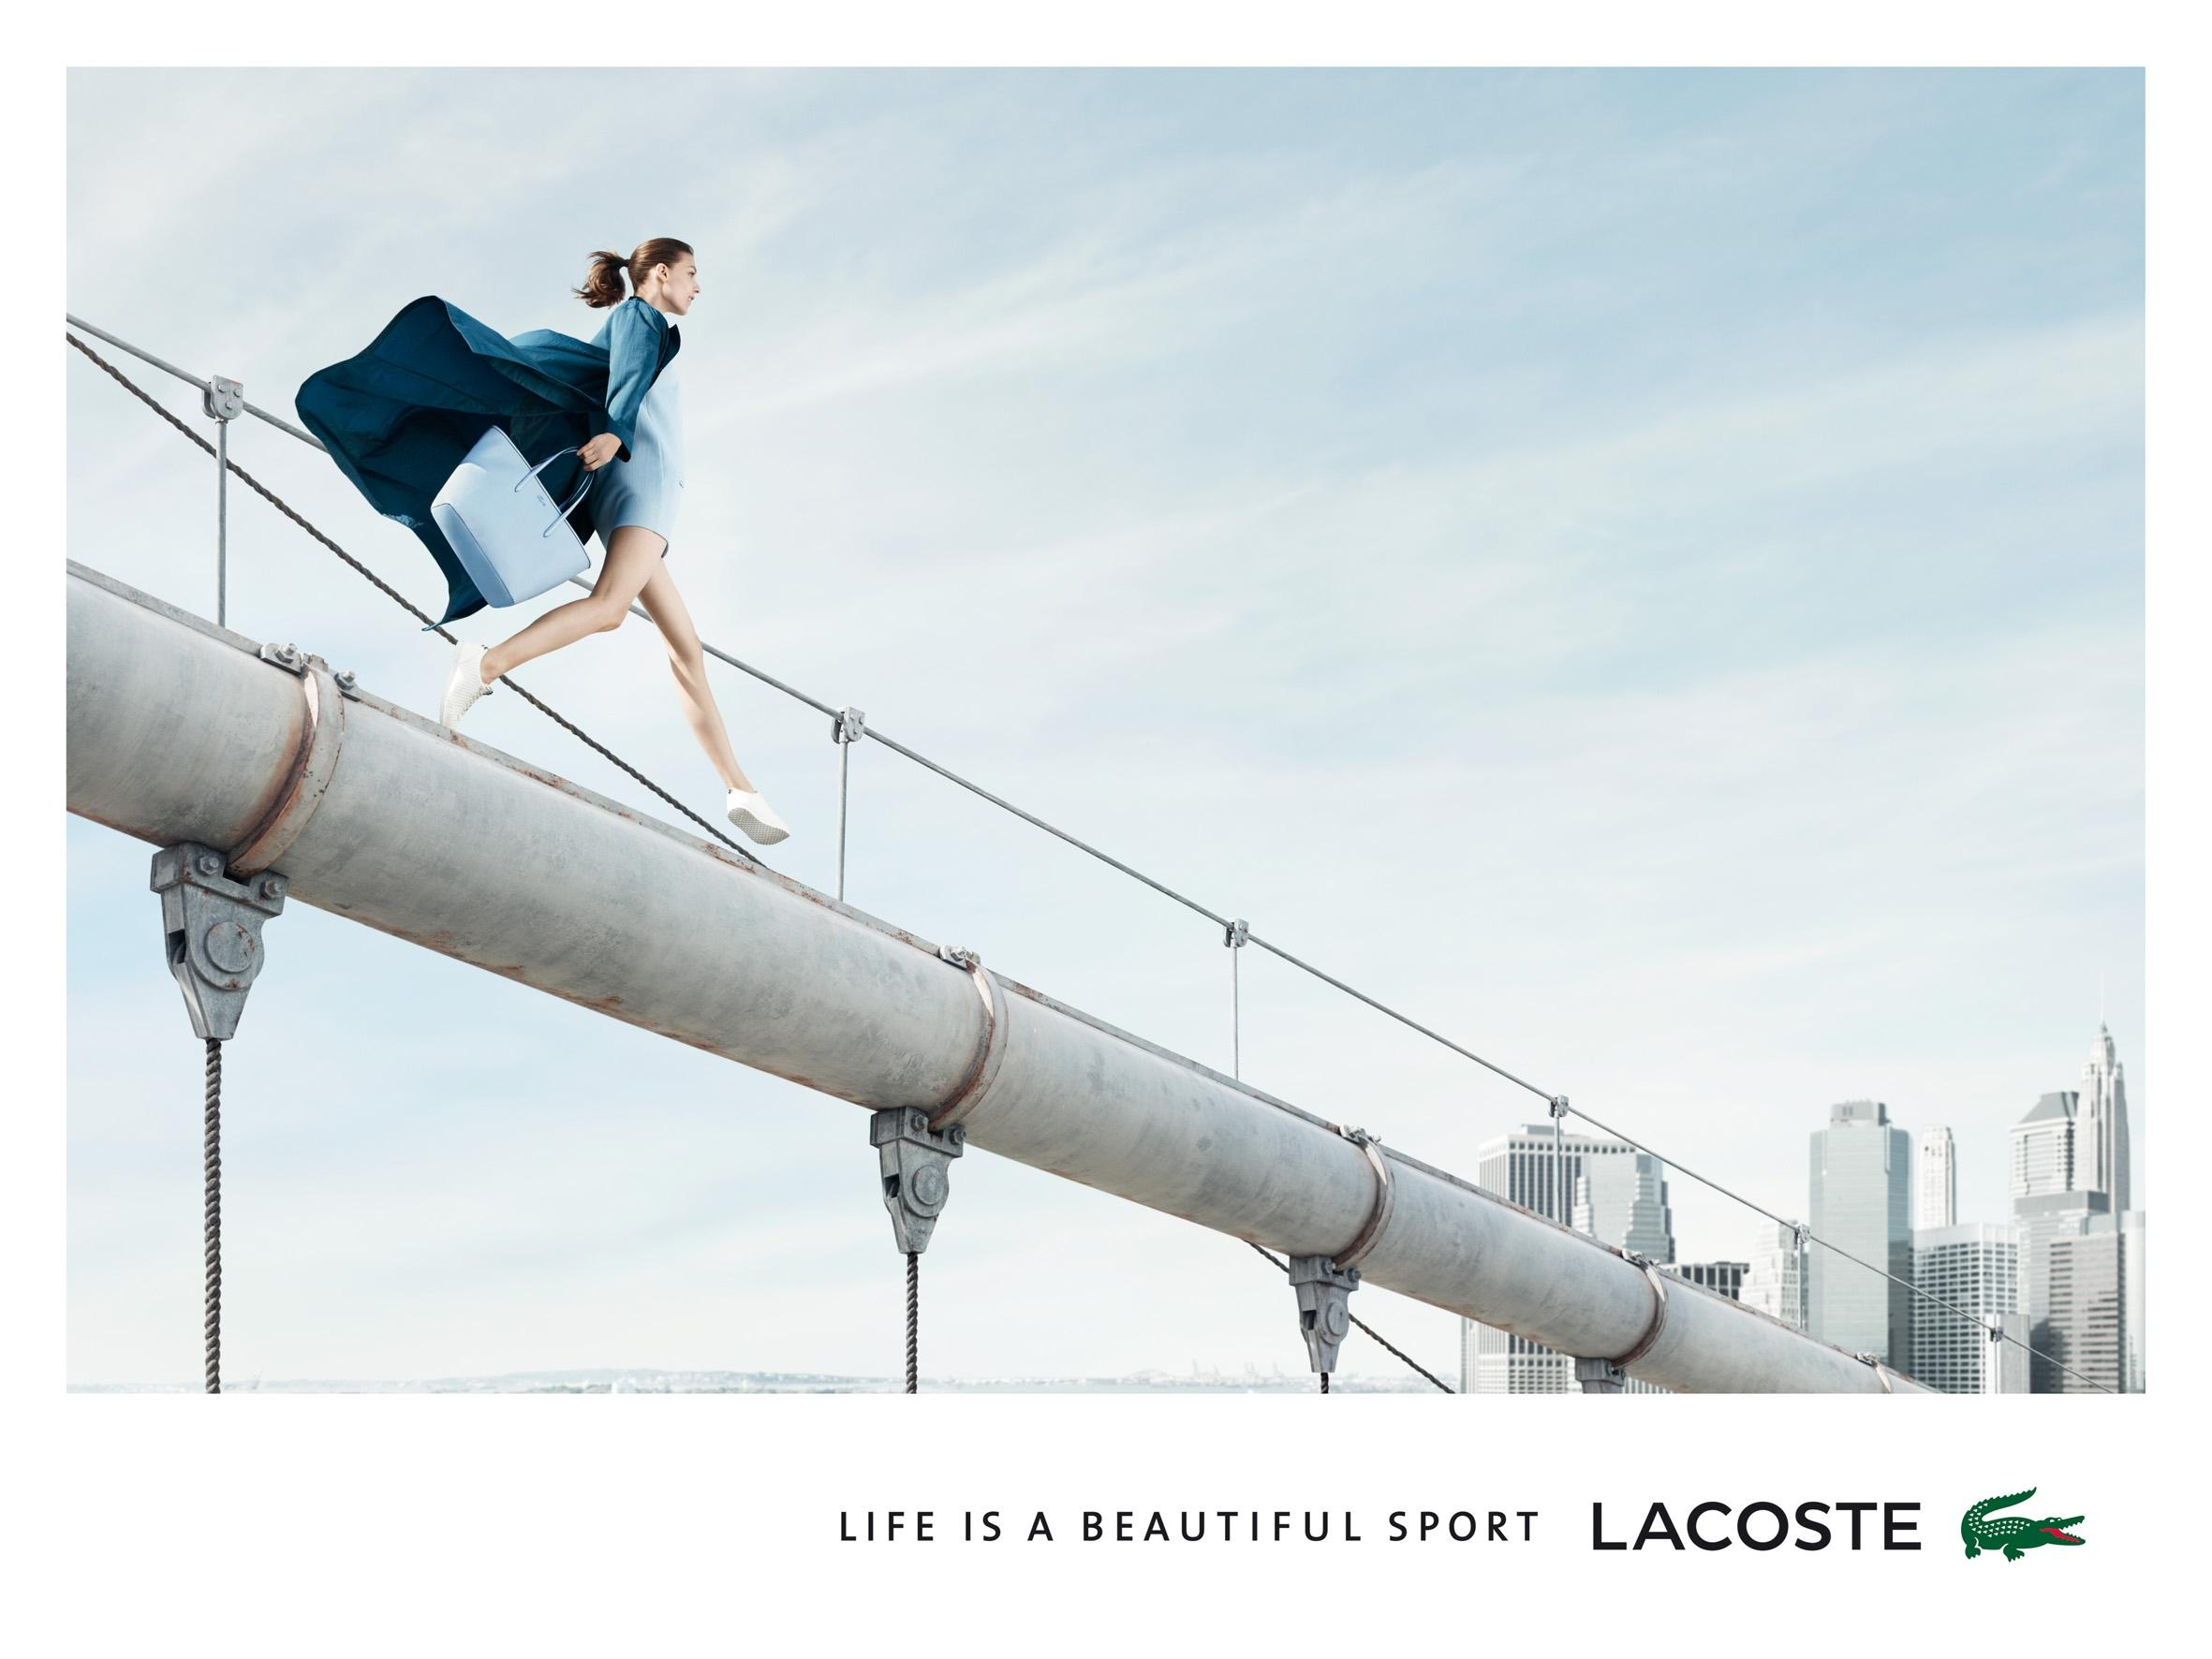 Life is a beautiful sport - Lacoste